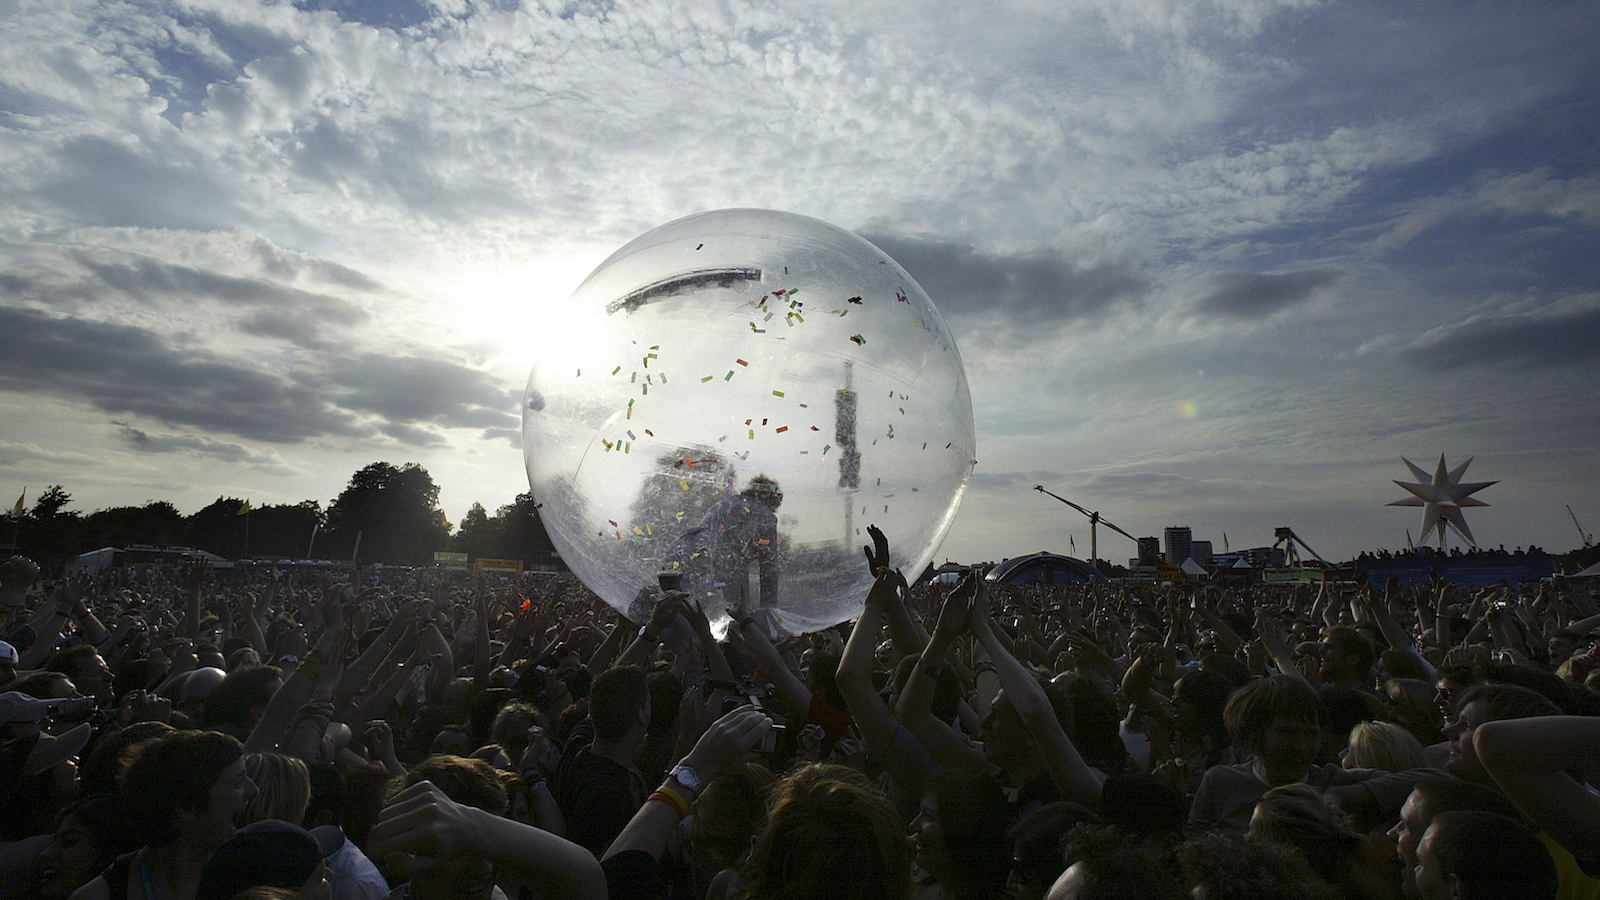 U.S. singer Wayne Coyne of the Flaming Lips rolls into the crowd in a giant bubble at the O2 Wireless Festival in Hyde Park, London on June 23, 2006. The festival runs until June 25. REUTERS/Leon Neal  (BRITAIN) - RTR1ESR5